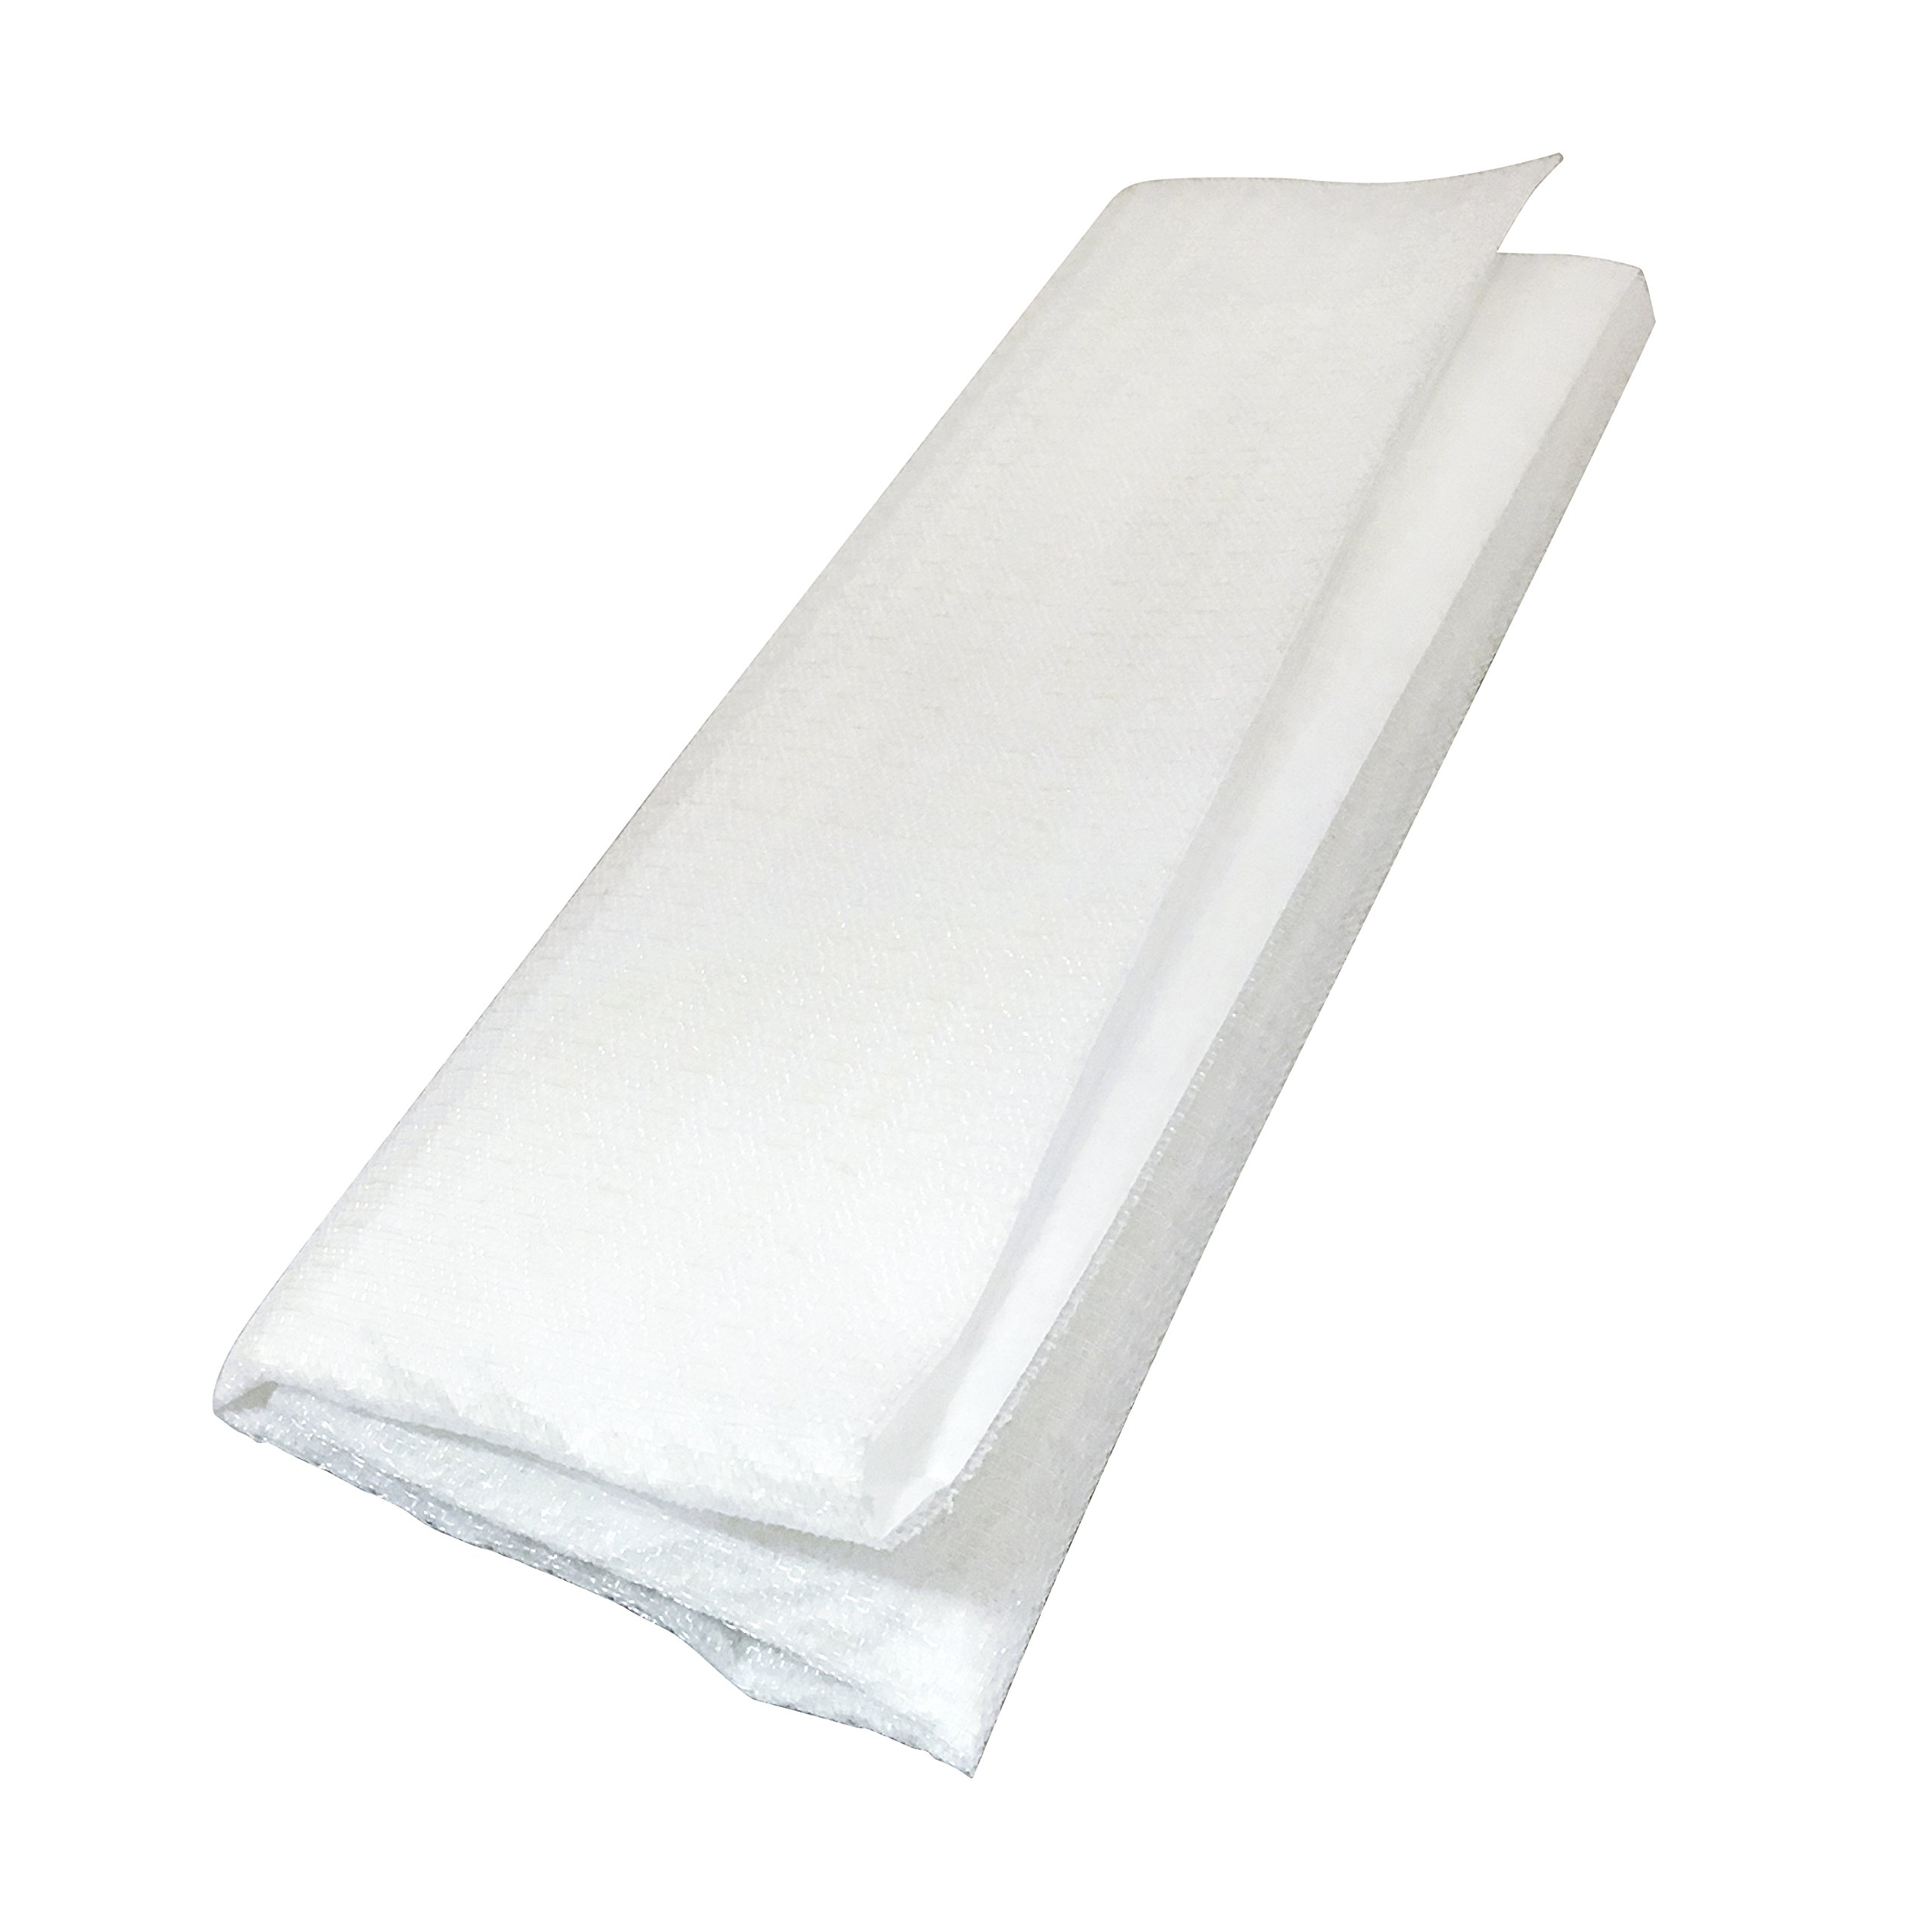 Frost King ES1550/6 Window Air Conditioner Electrostatic Filter, 13.5 inch High x 24 inch Wide x 1/4 inch Thick,,, White